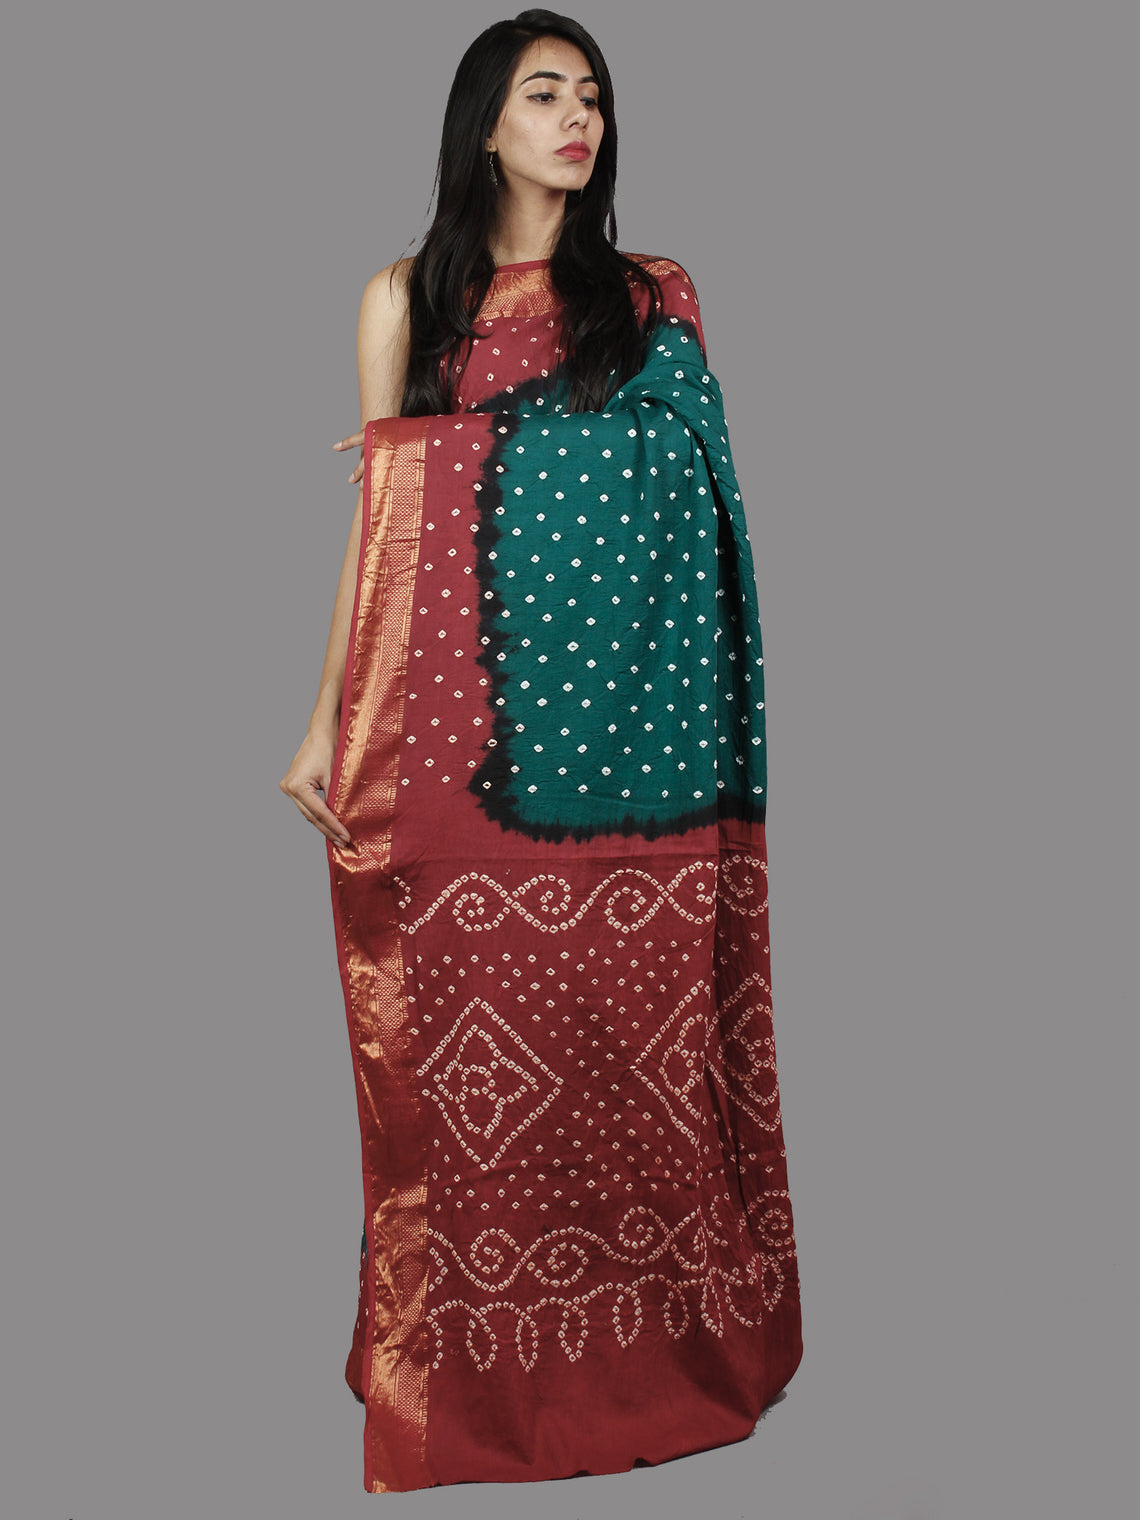 Peacock Green Maroon White Hand Tie & Dye Bandhej Glace Cotton Saree With Resham Border - S031701393